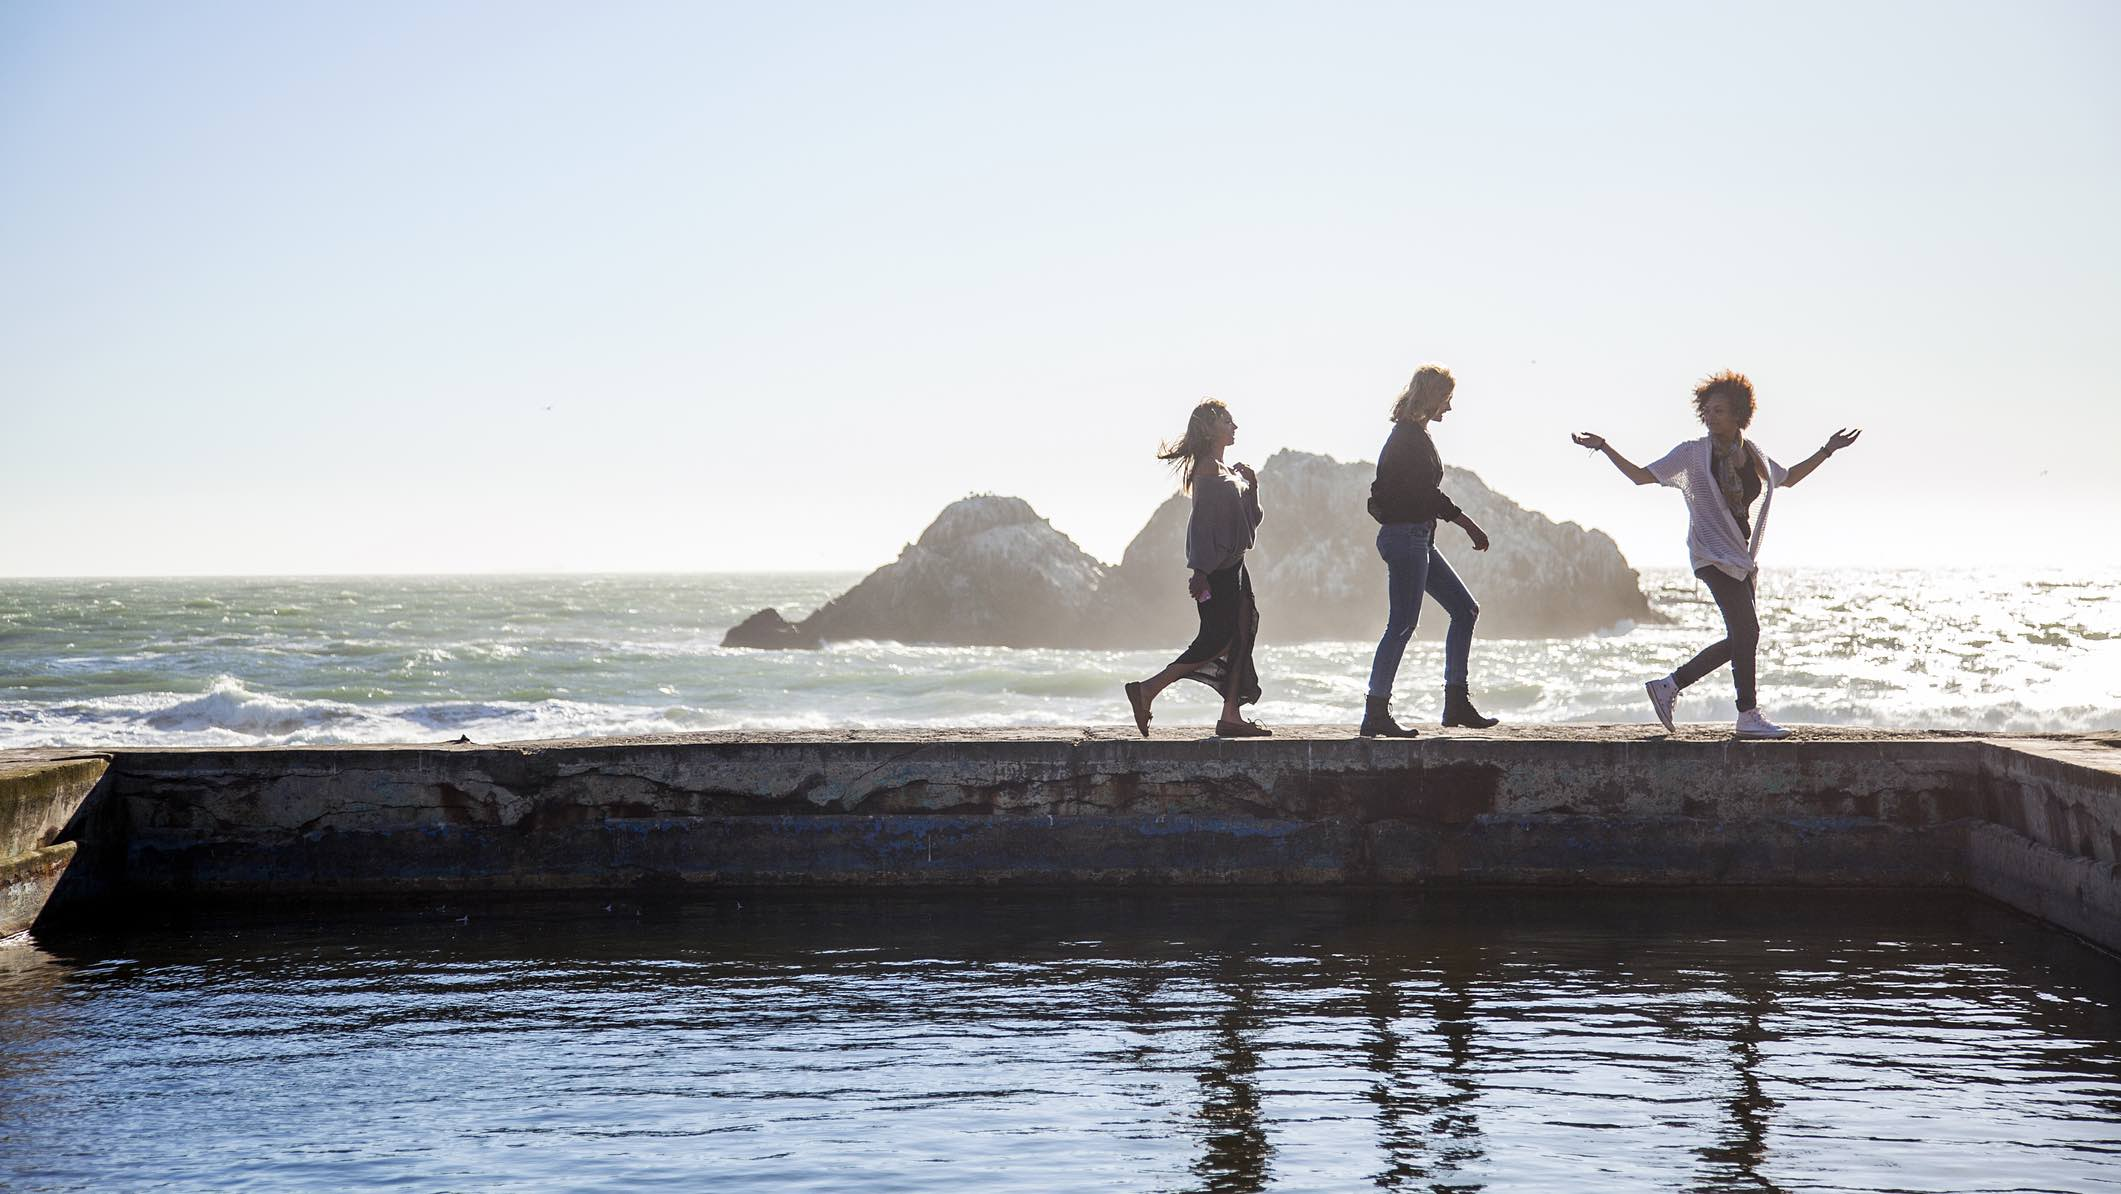 Three people walking on the edge of an ocean pool, discussion spending on travel in 2021.